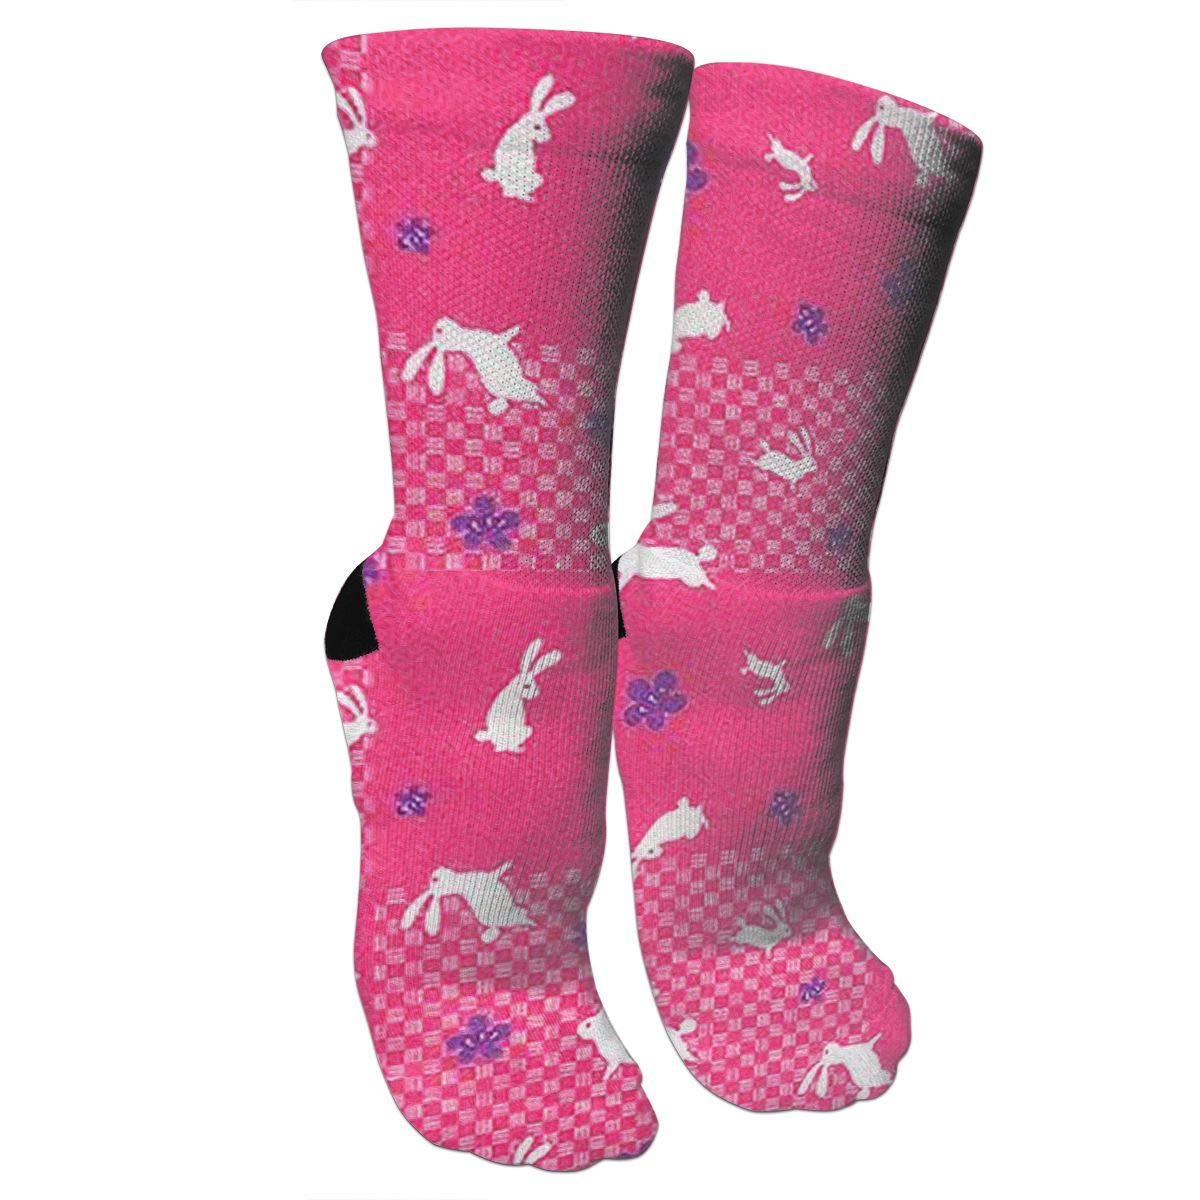 Pink Rabbit Crazy Socks Casual Cotton Crew Socks Cute Funny Sock great for sports and hiking